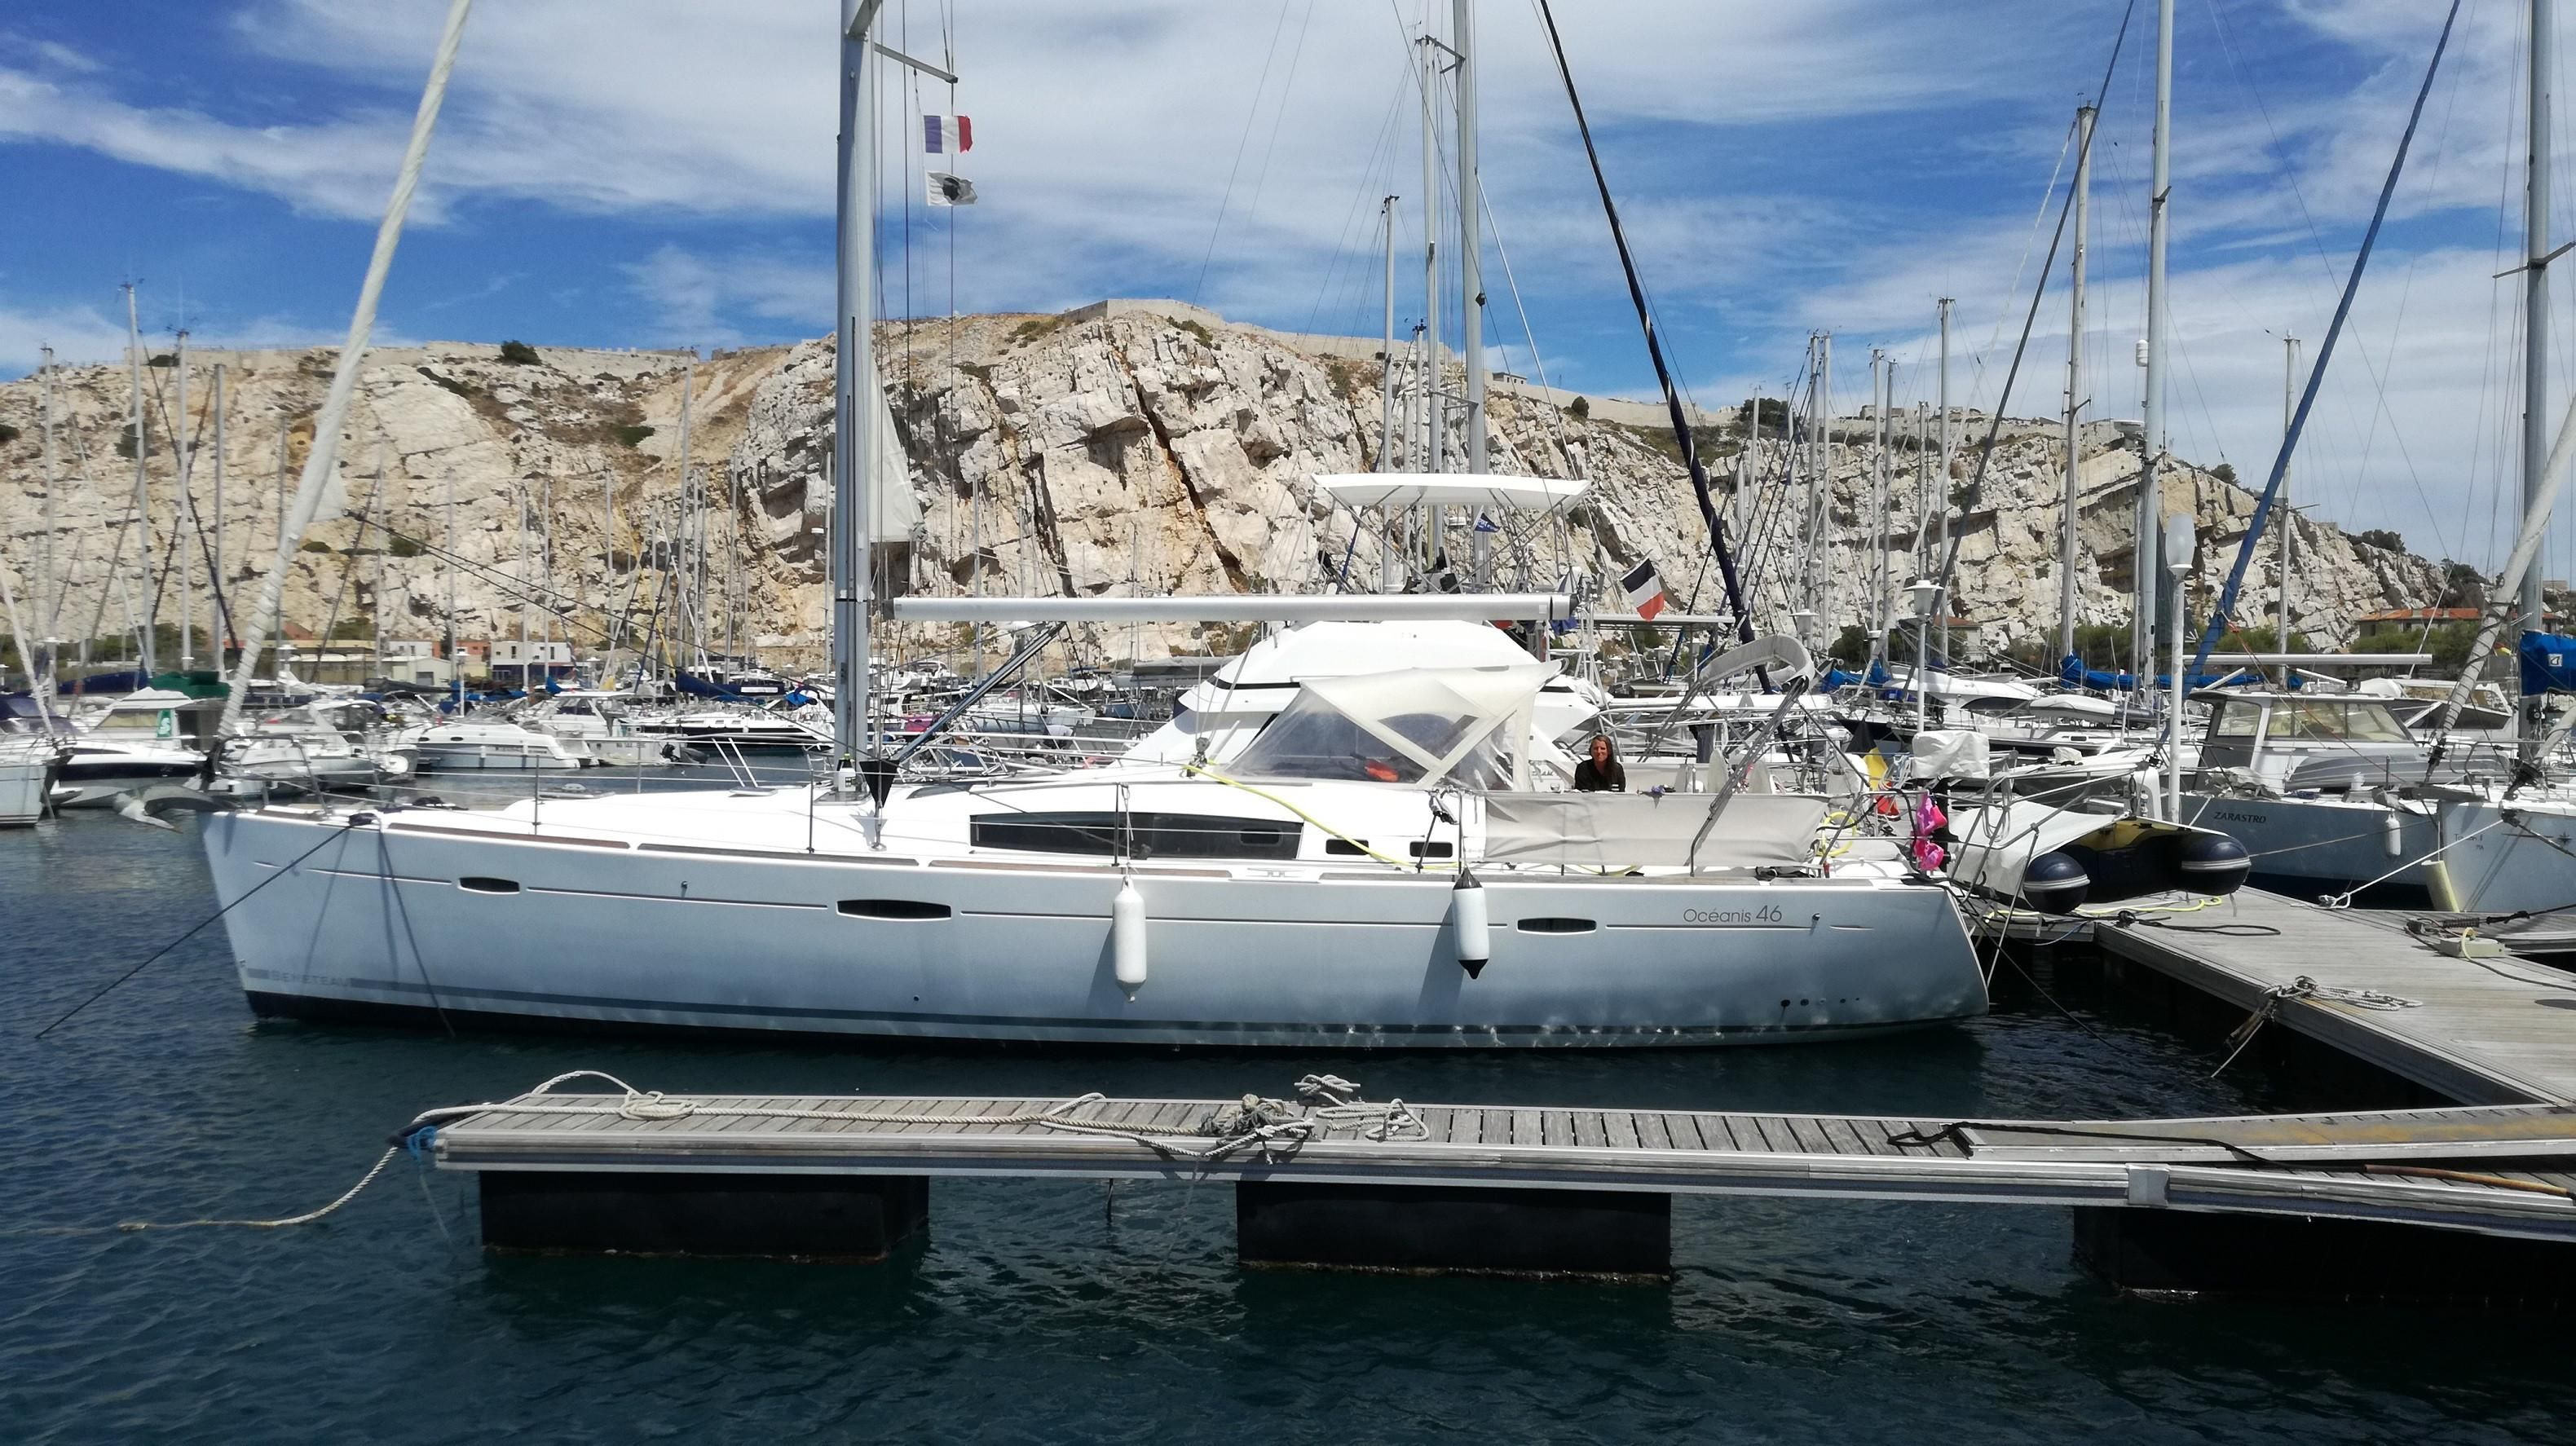 Advanced Diesel Anchorage >> 2008 Beneteau Oceanis 46 Sail Boat For Sale - www.yachtworld.com